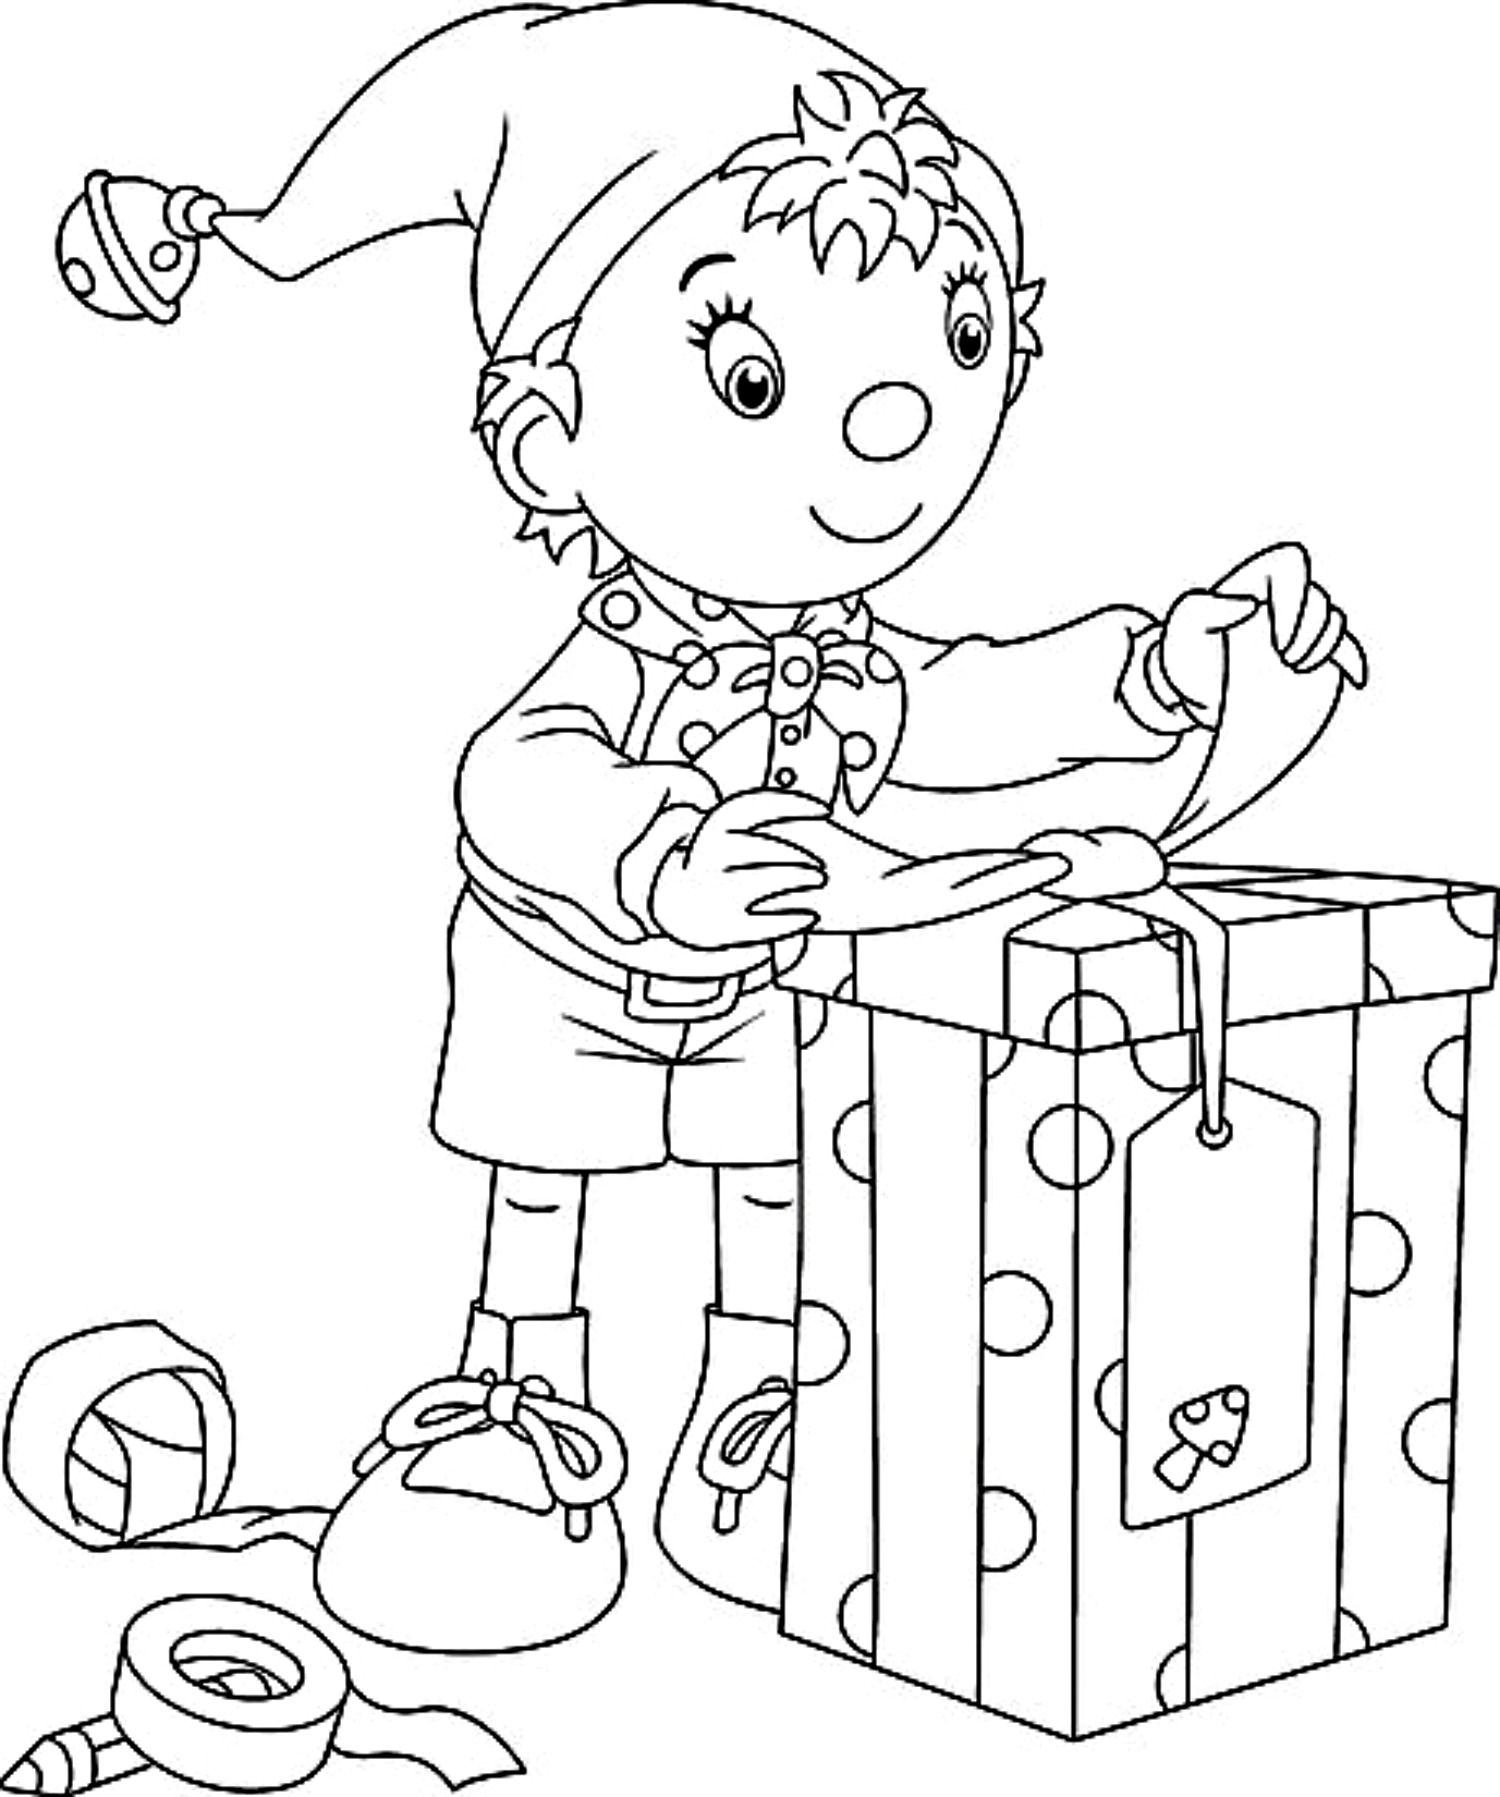 Santa S Elf Coloring Pages With CHRISTMAS COLORING PAGE Song And Free Printable Christmas